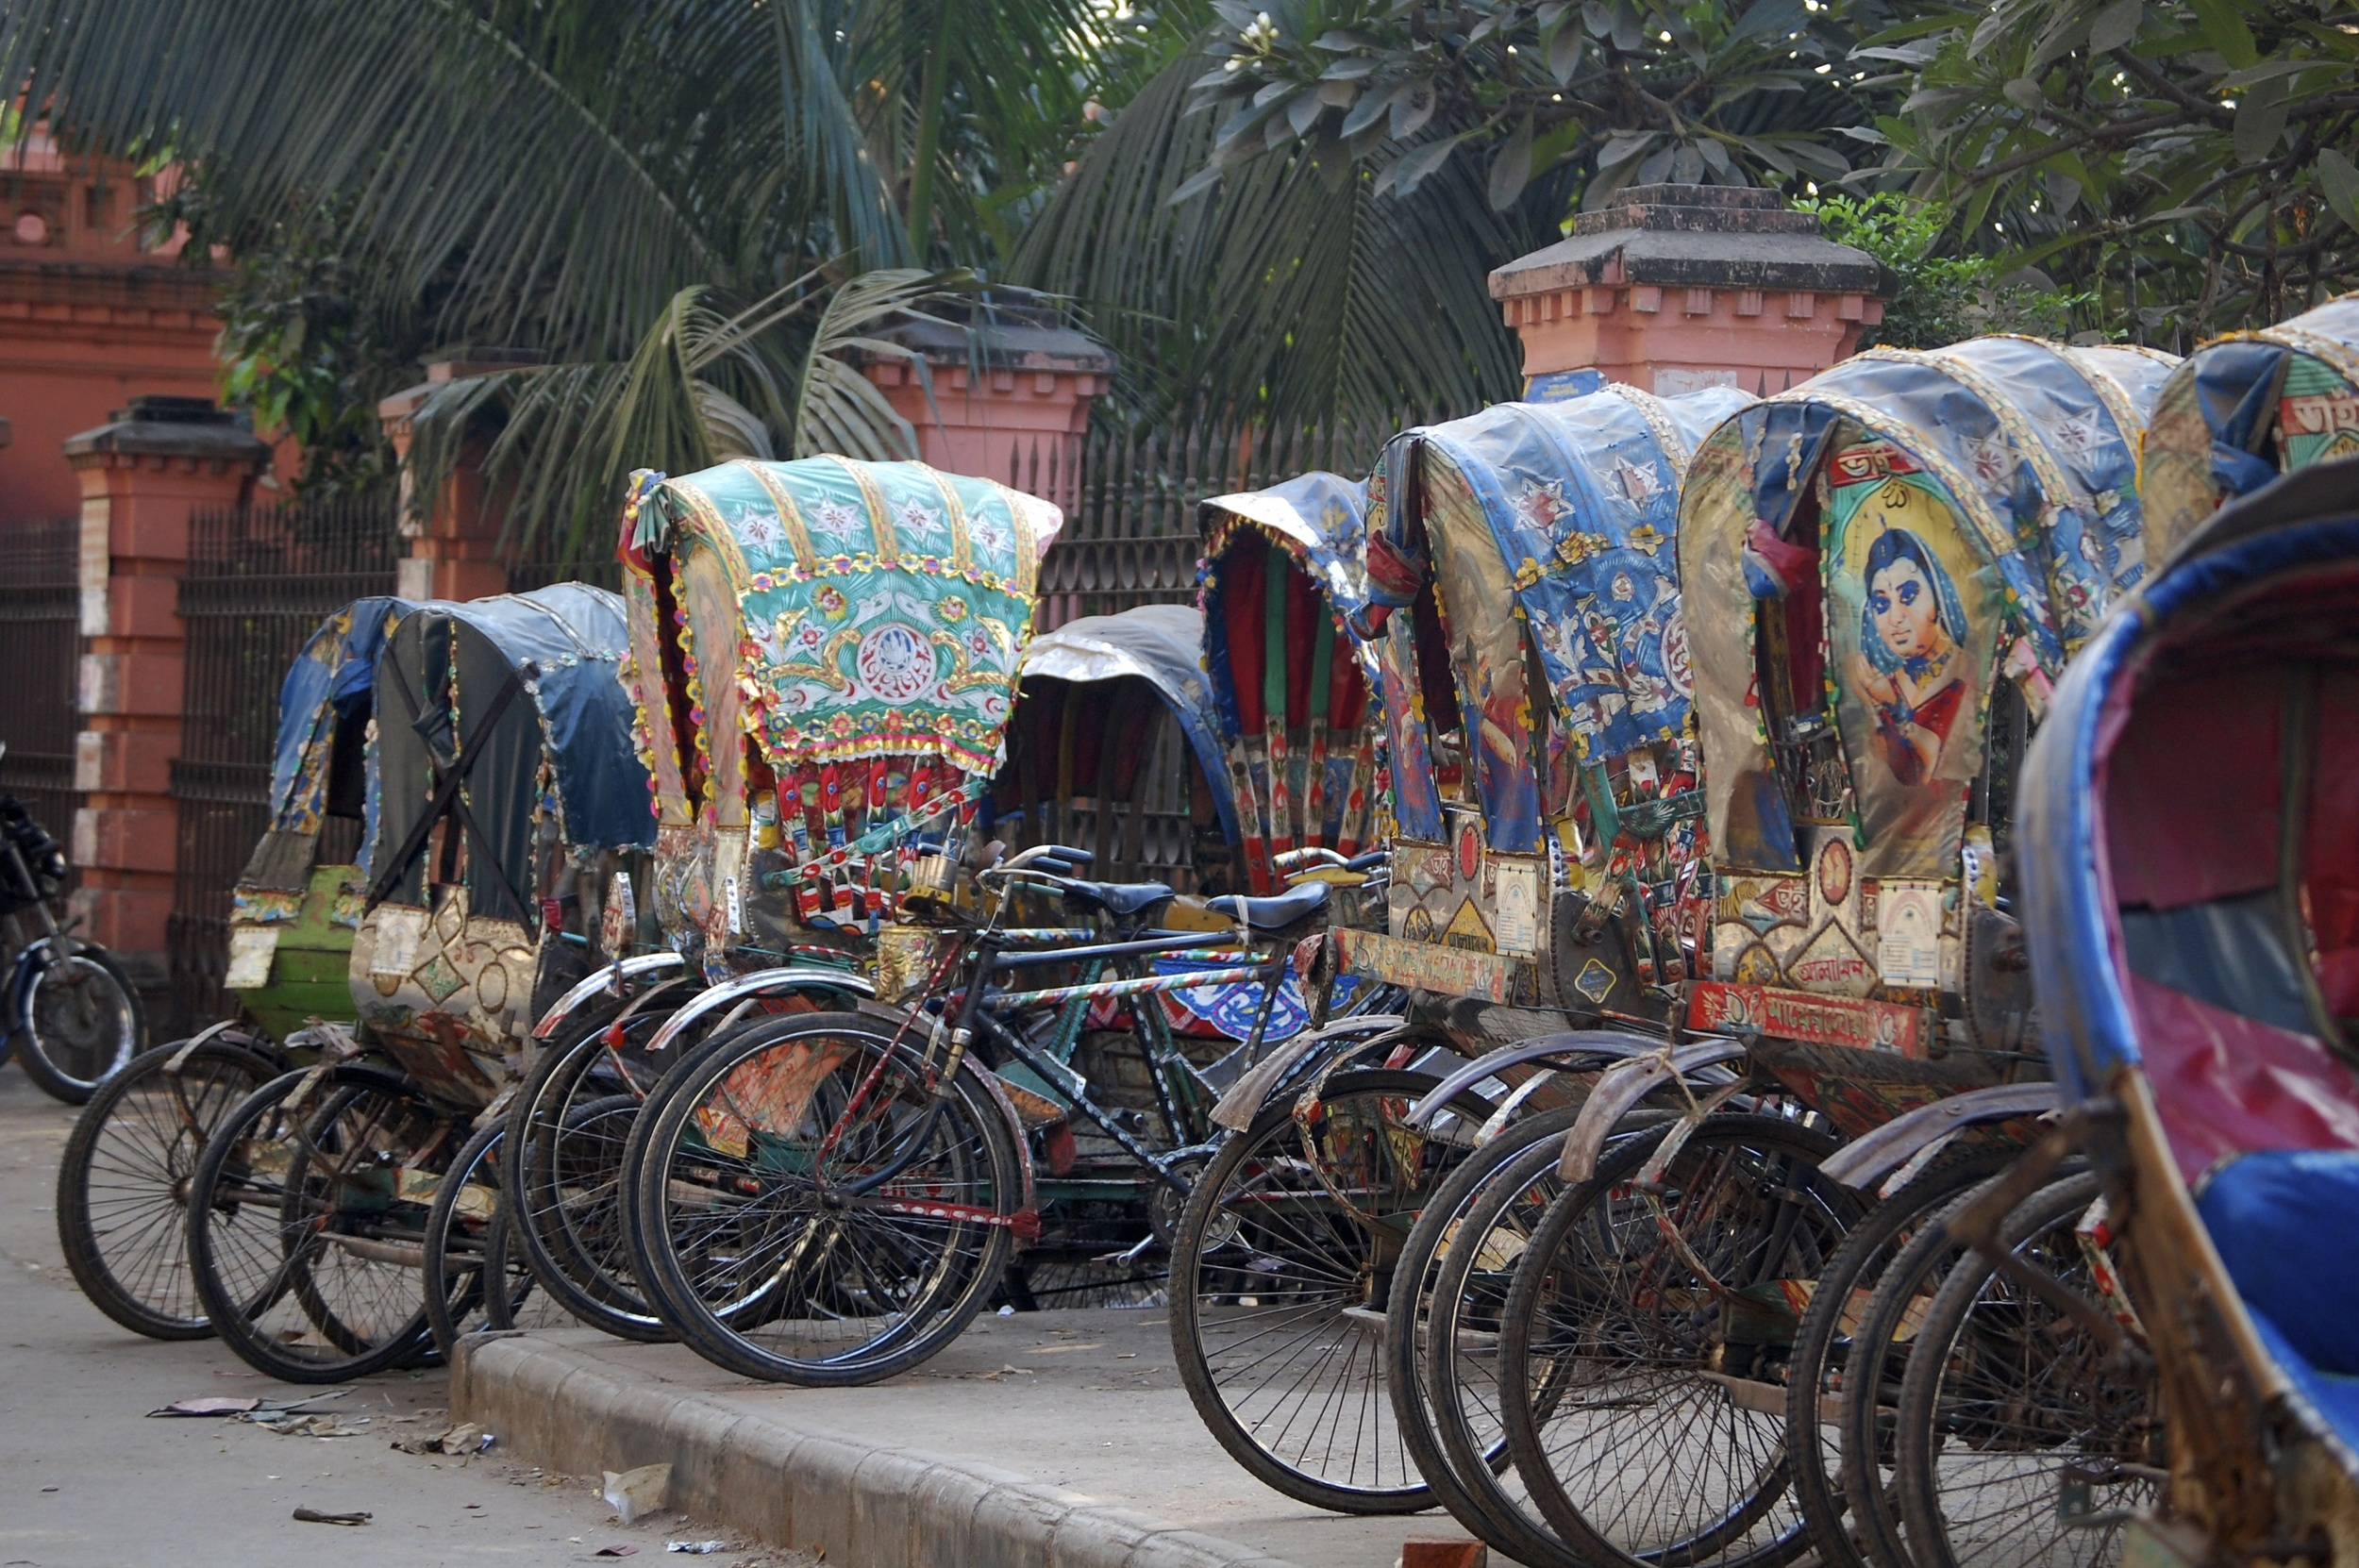 Rickshaws in Dhaka